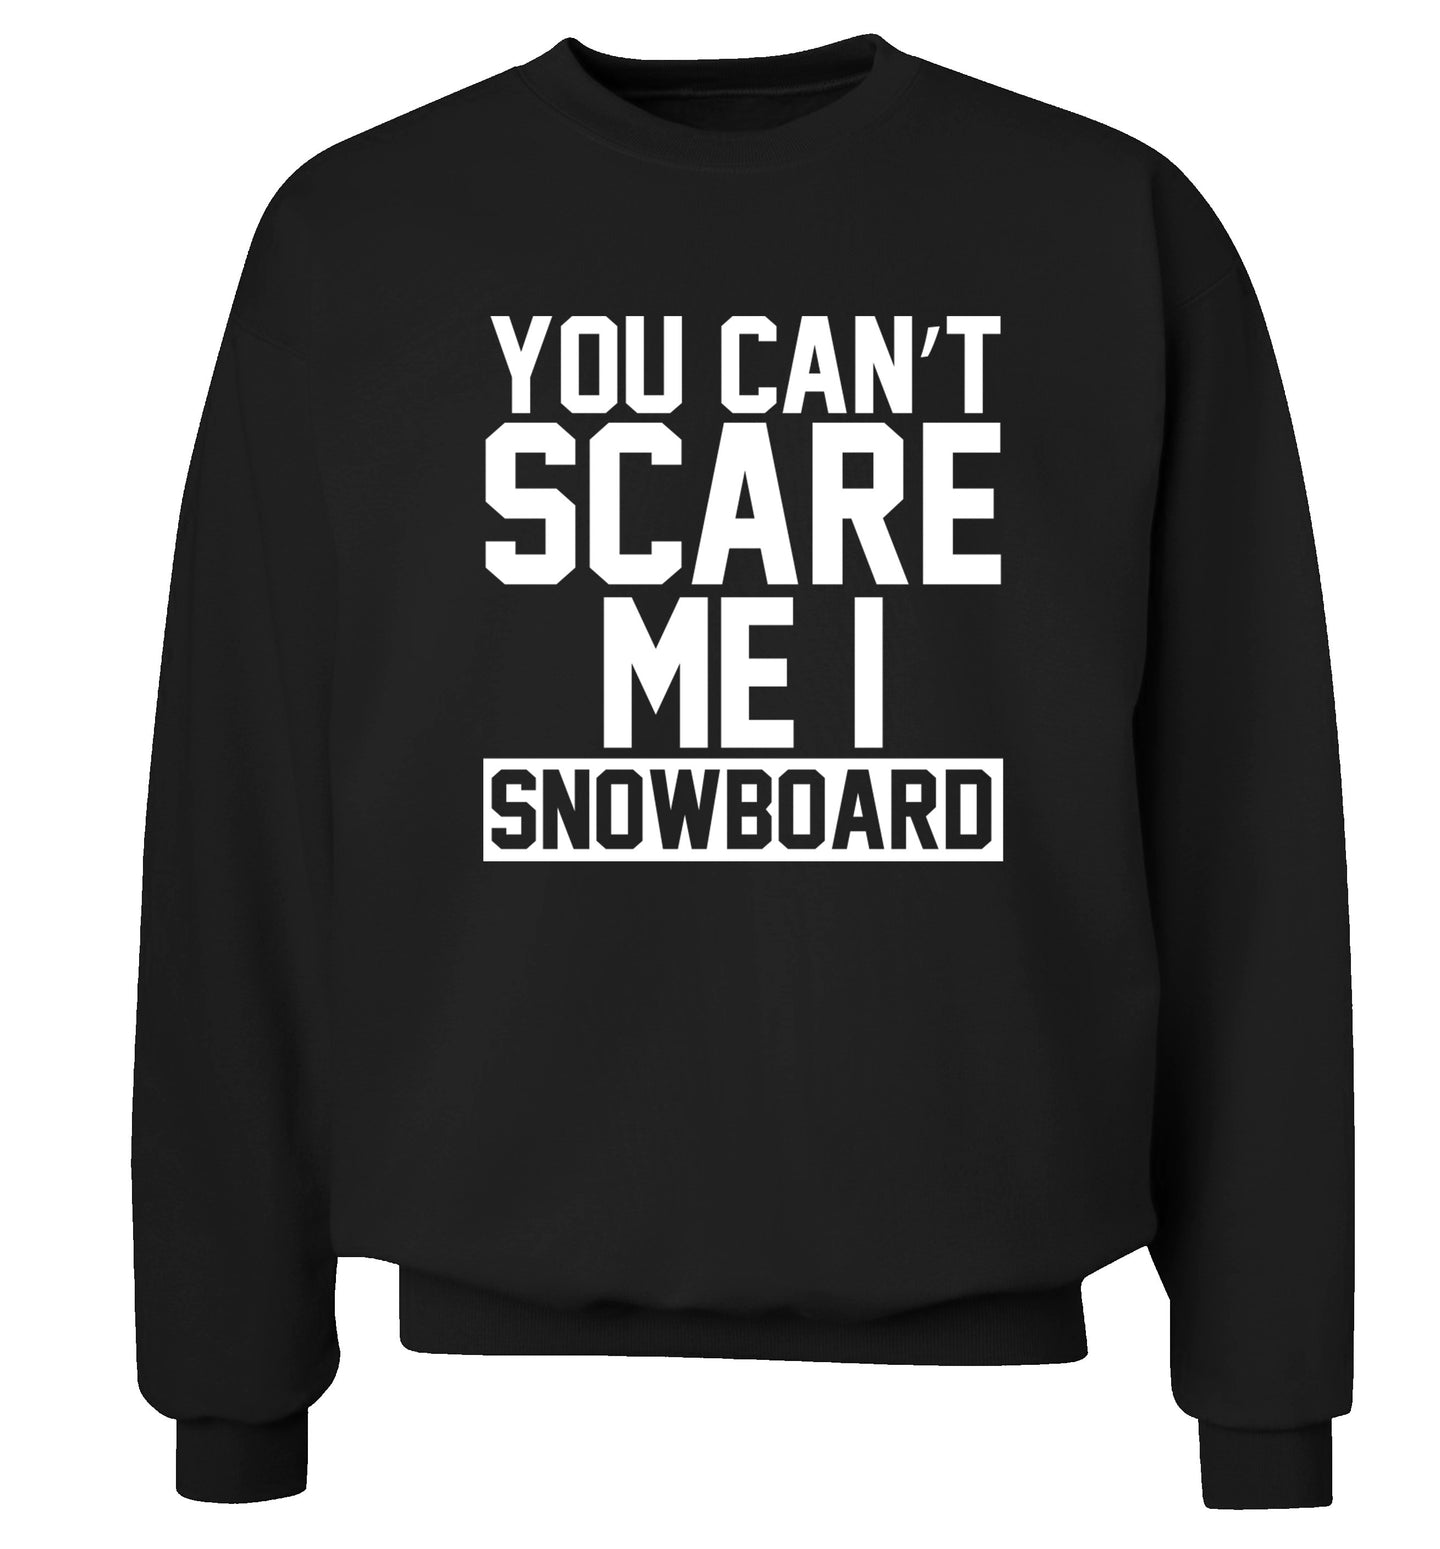 You can't scare me I snowboard Adult's unisex black Sweater 2XL